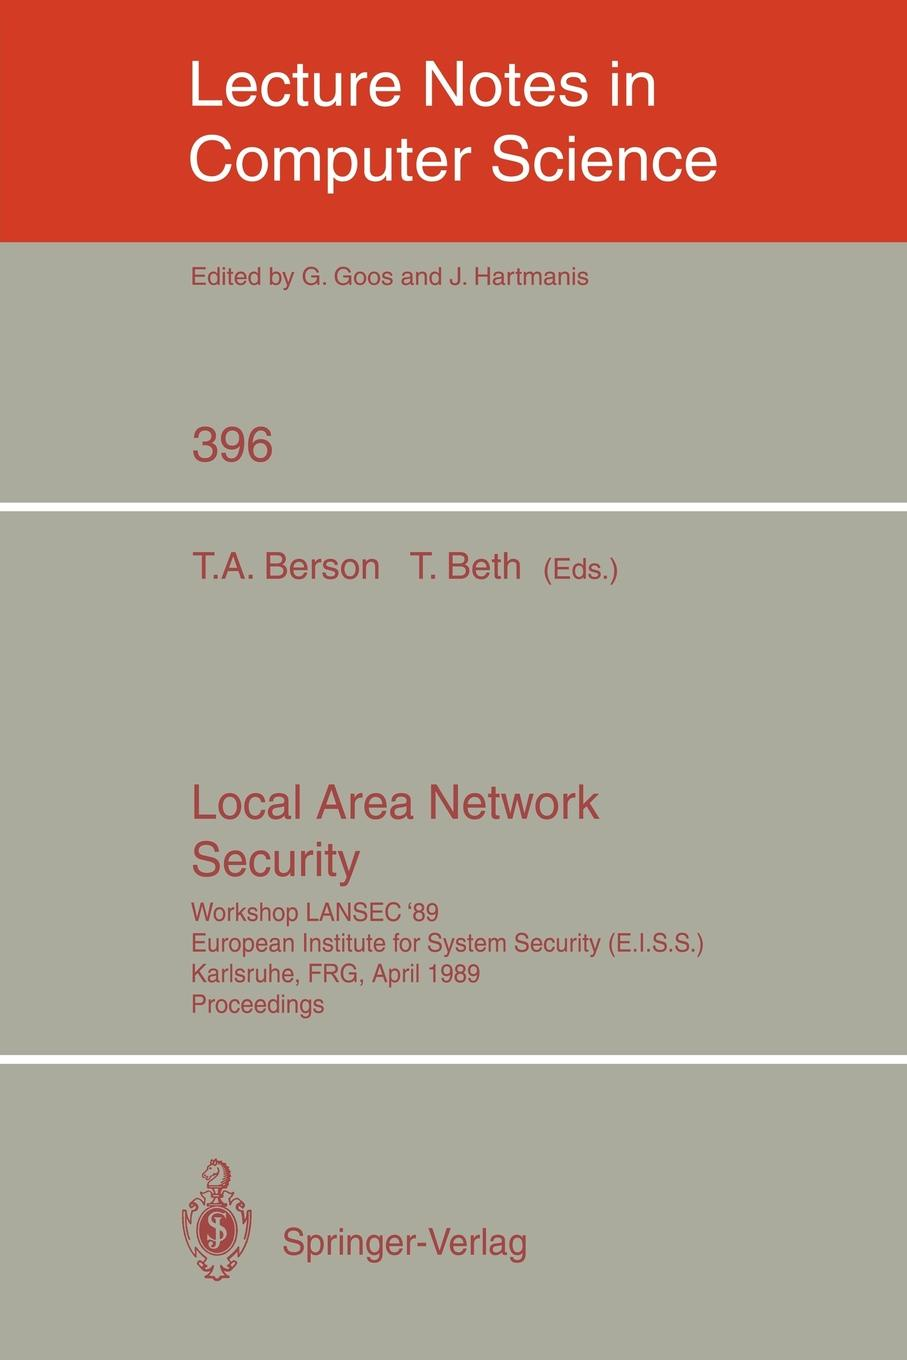 Local Area Network Security. Workshop LANSEC '89. European Institute for System Security (E.I.S.S.) Karlsruhe, FRG, April 3-6, 1989. Proceedings karlsruhe туризм